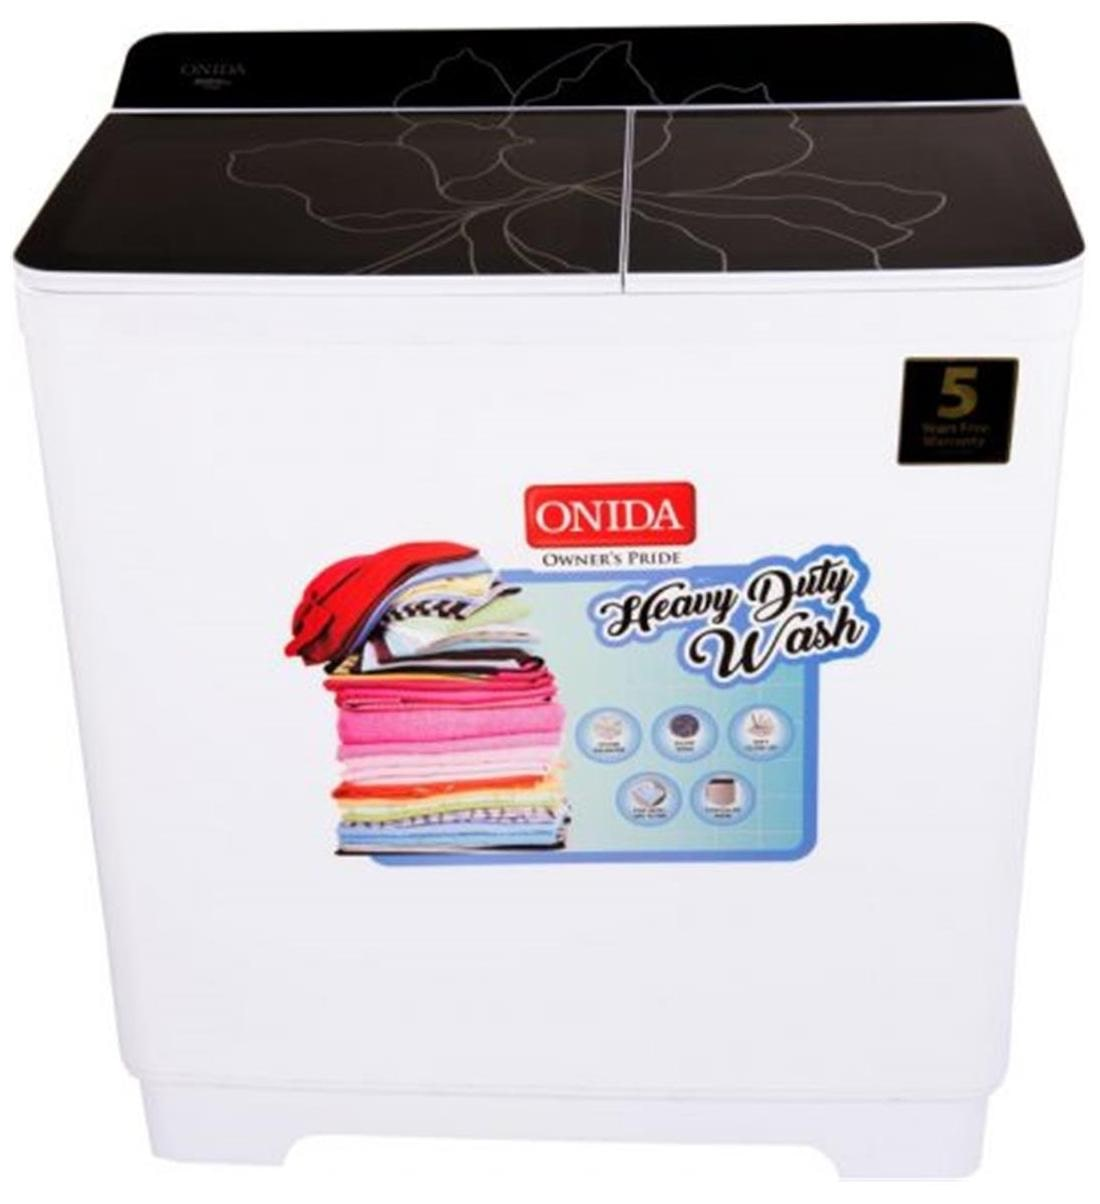 Onida S95GC Kg 9.5KG Semi Automatic Top Load Washing Machine